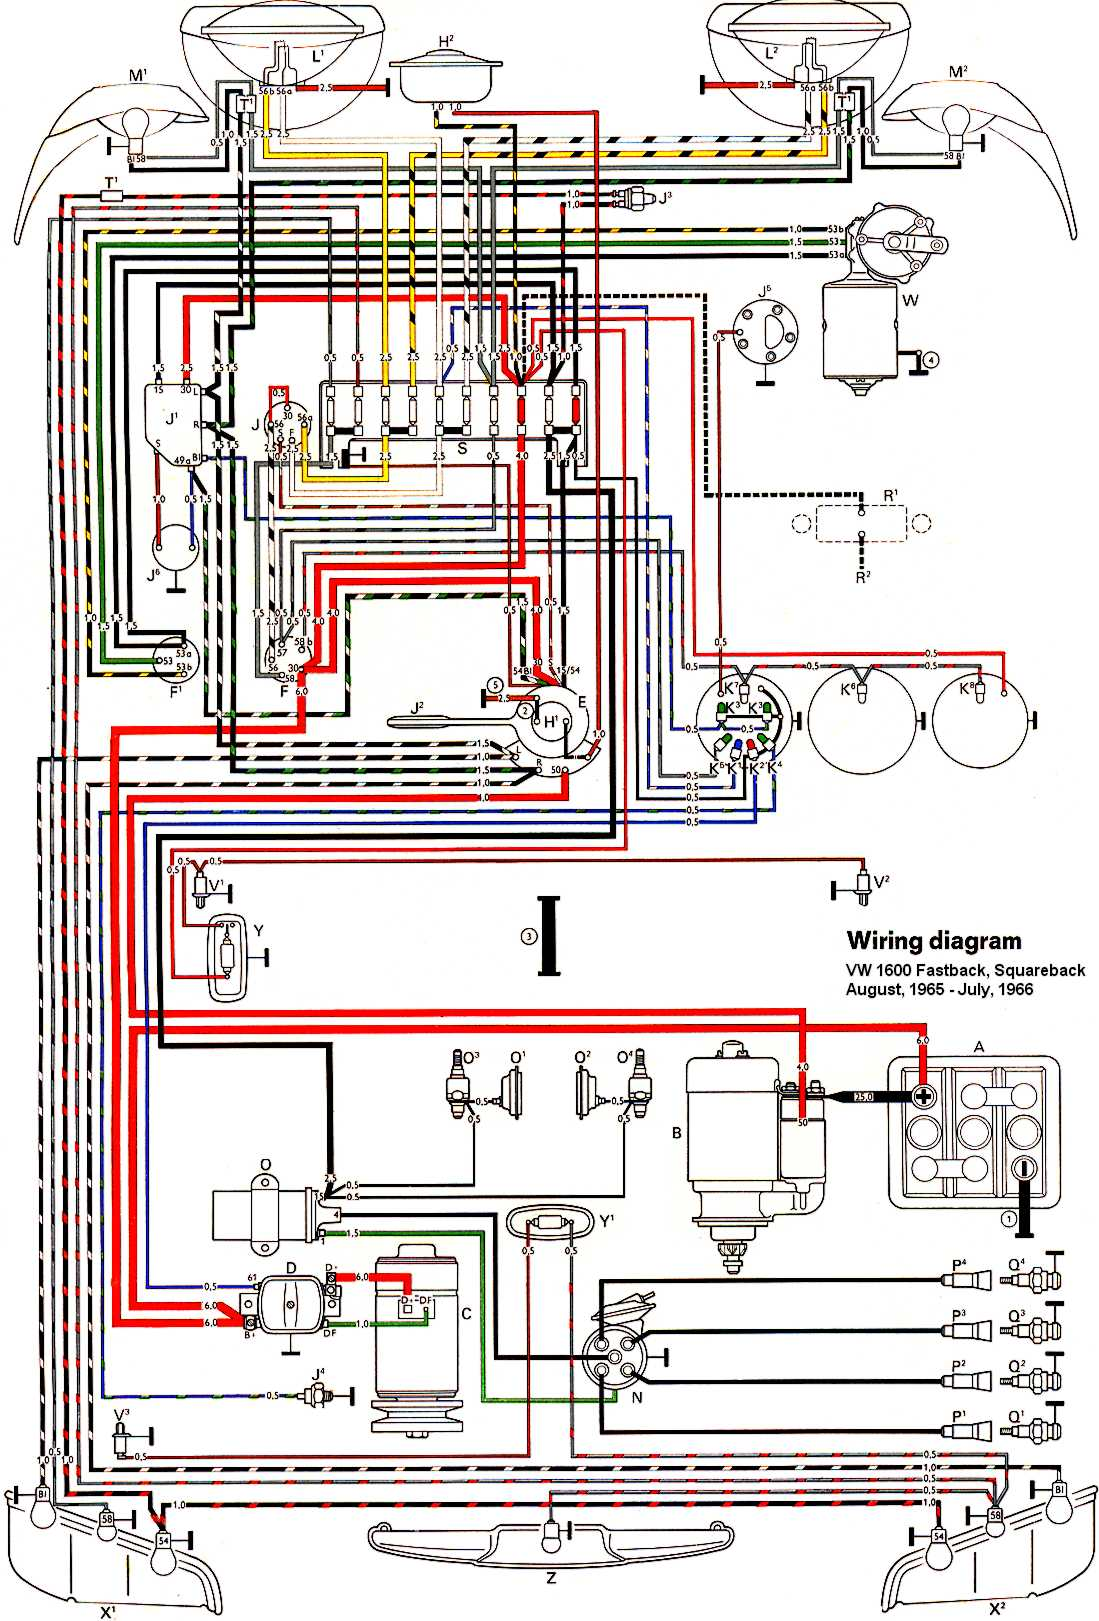 type3_1600_66 thesamba com type 3 wiring diagrams find wiring diagram for 87 ford f 150 at soozxer.org